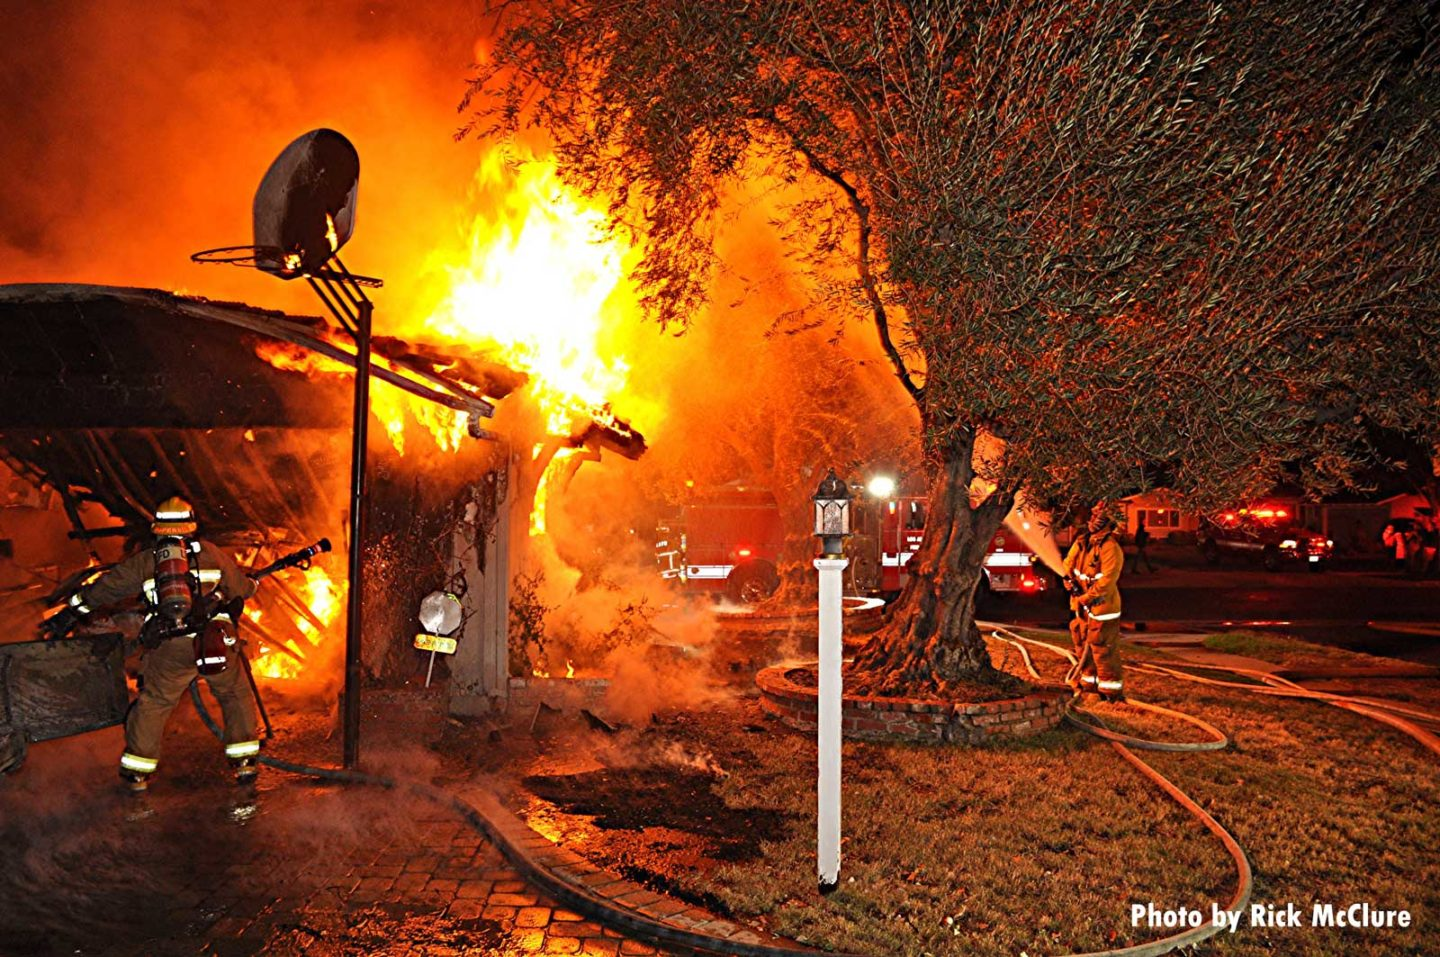 Flames lick up at tree as firefighters respond to burning building with a basketball hoop